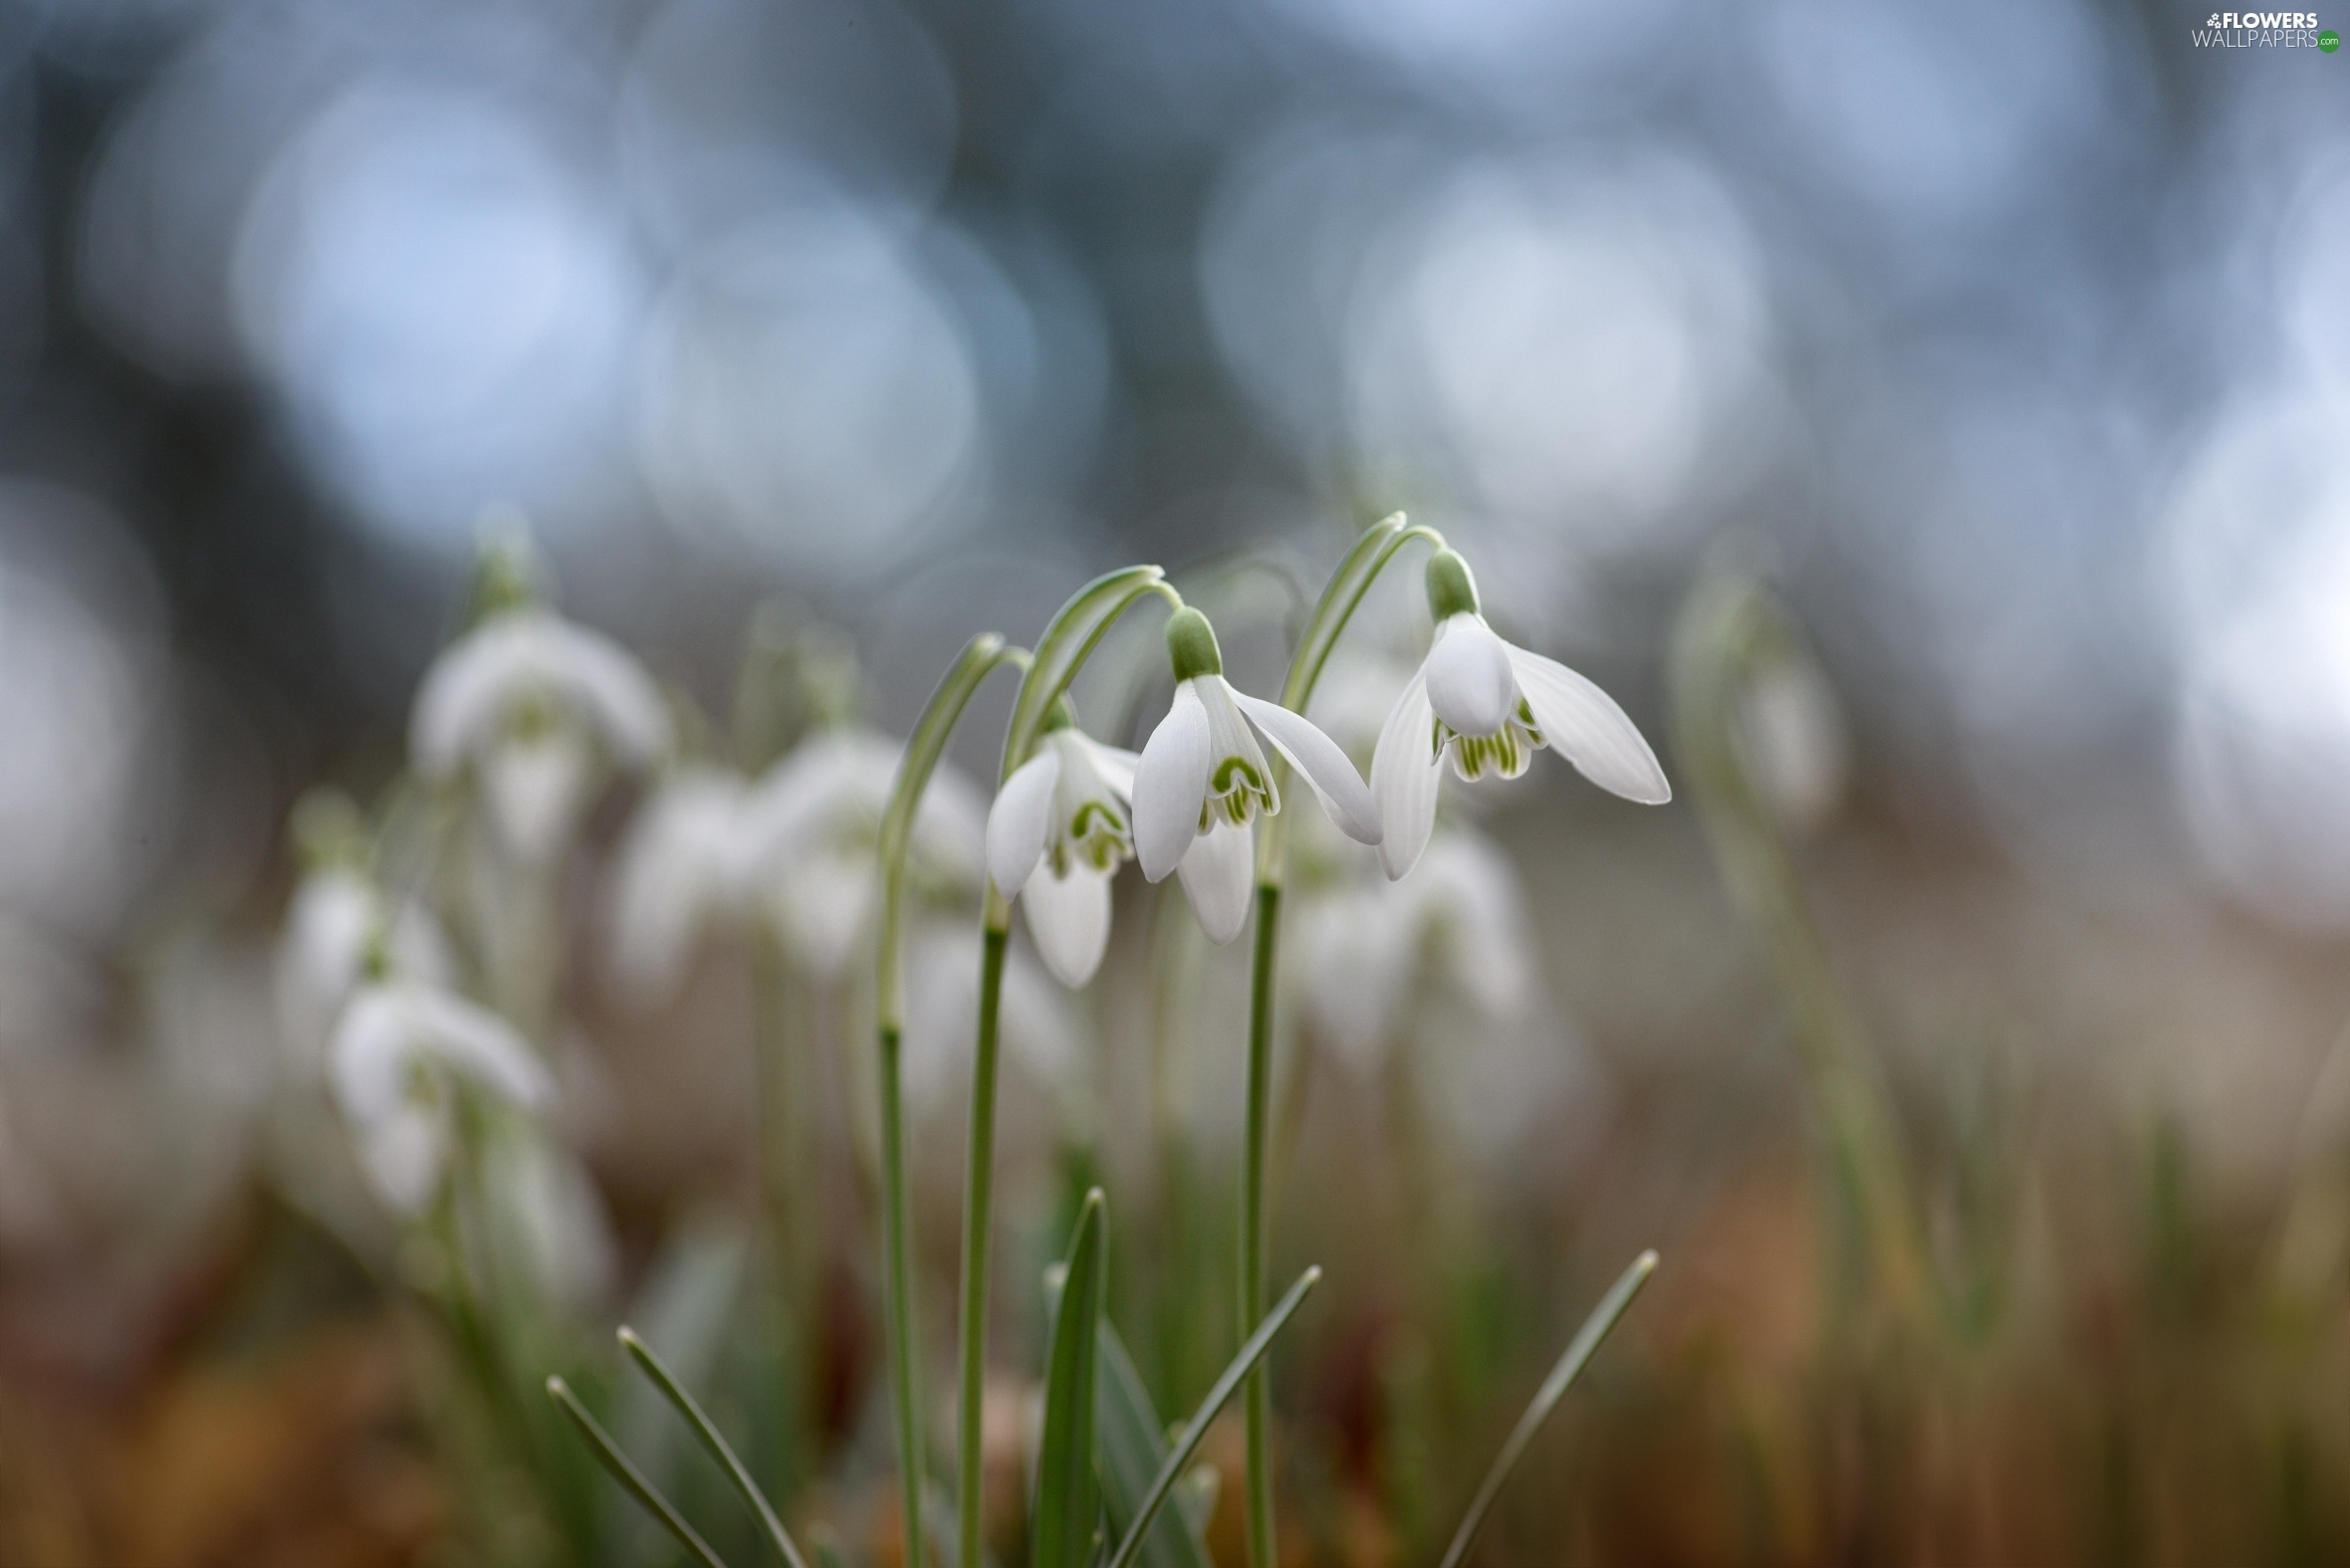 cluster, snowdrops